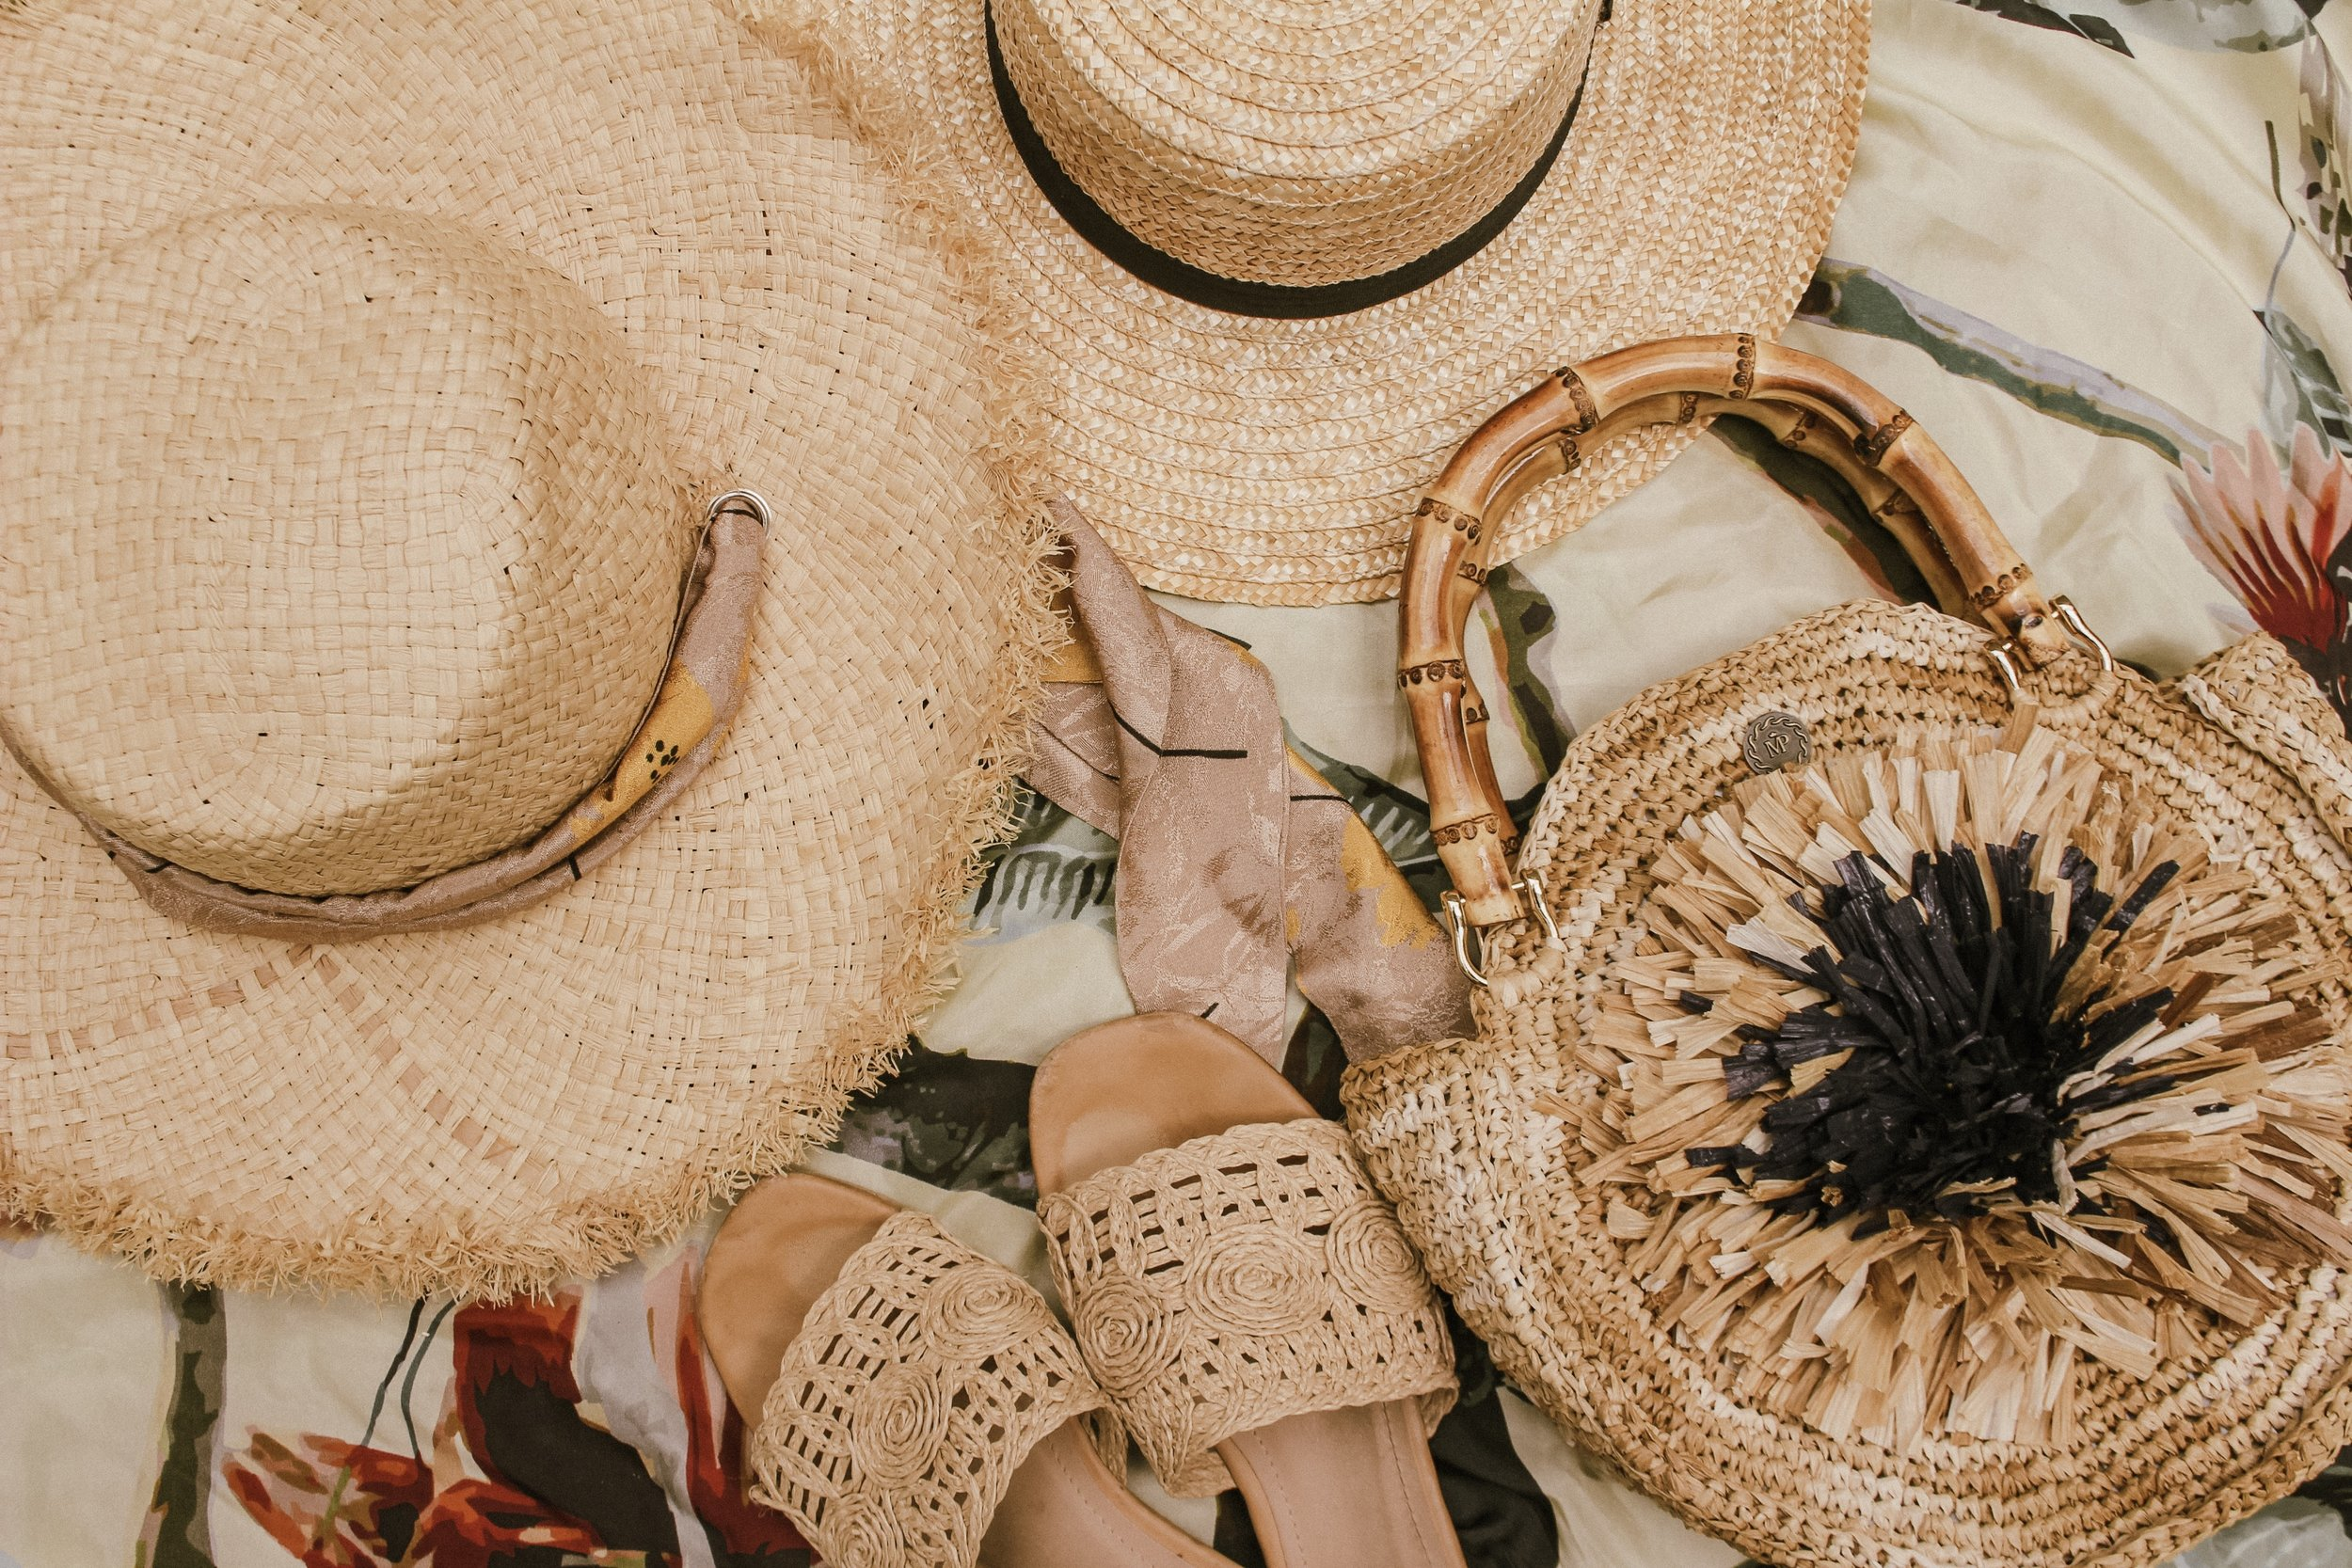 Straw everything! - I got the beachy straw hat 2 summers ago, and the other straw hat almost 4 years ago! I bring them out every spring and summer.